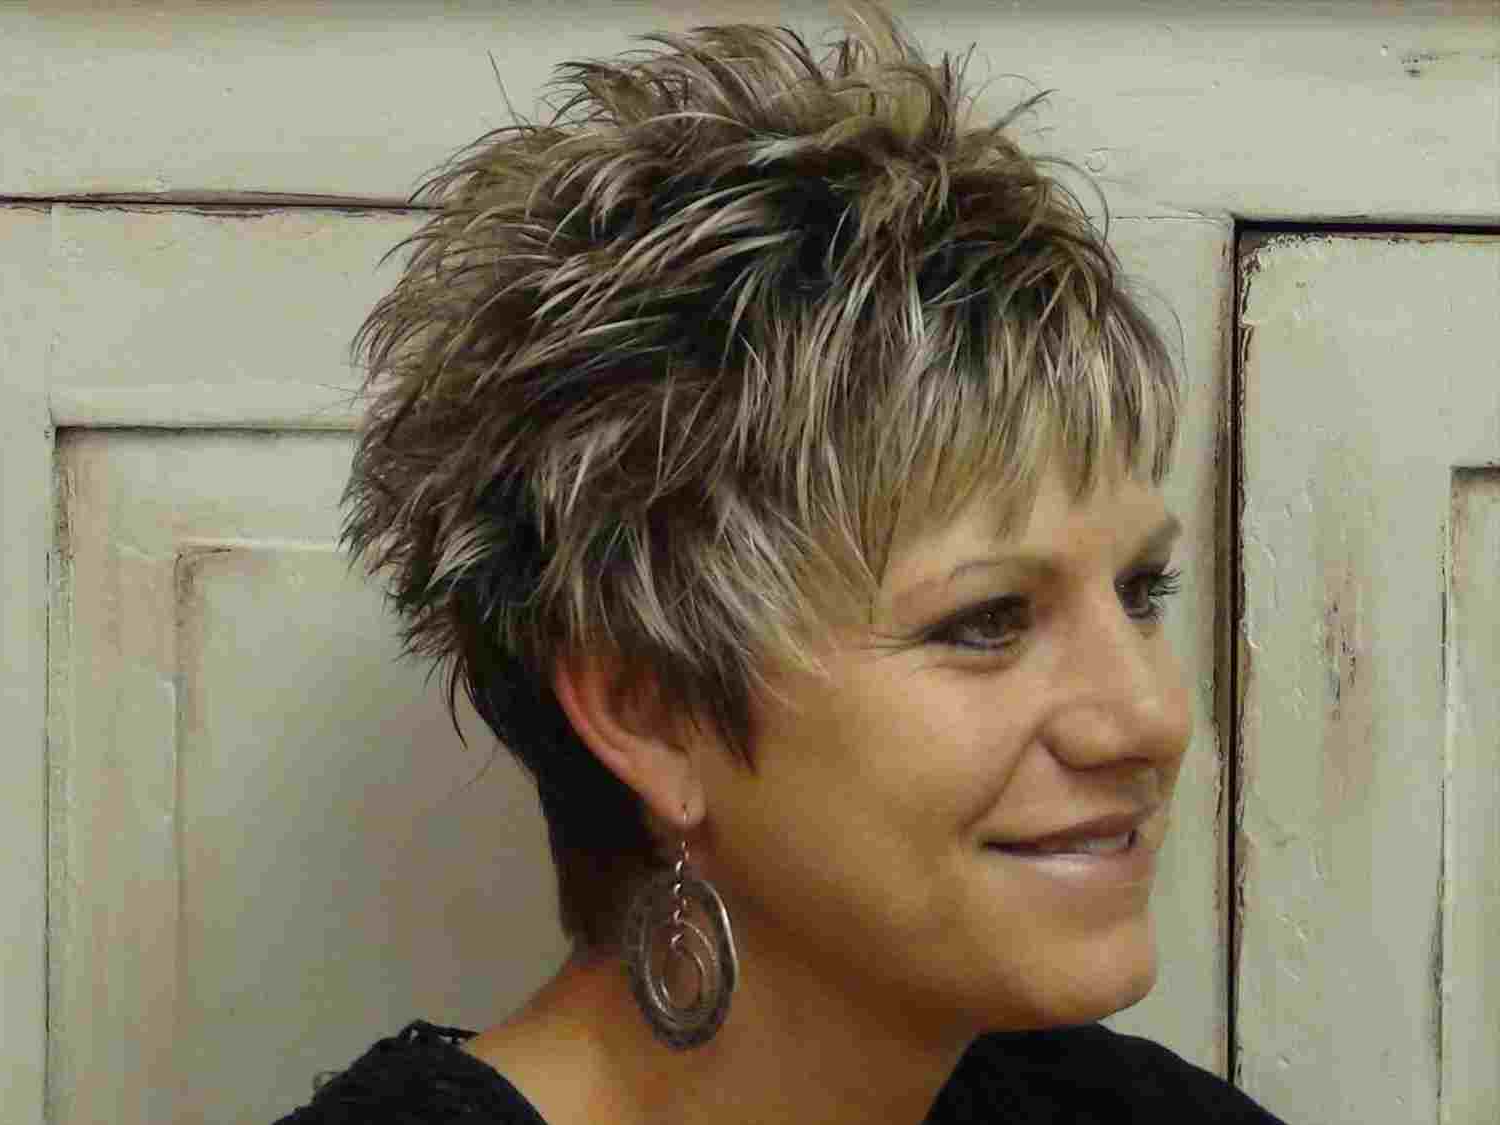 Short Hairstyles For Fat Women Over 40   Nawabfusiongrill With Short Hairstyles For Fine Hair Over  (View 23 of 25)